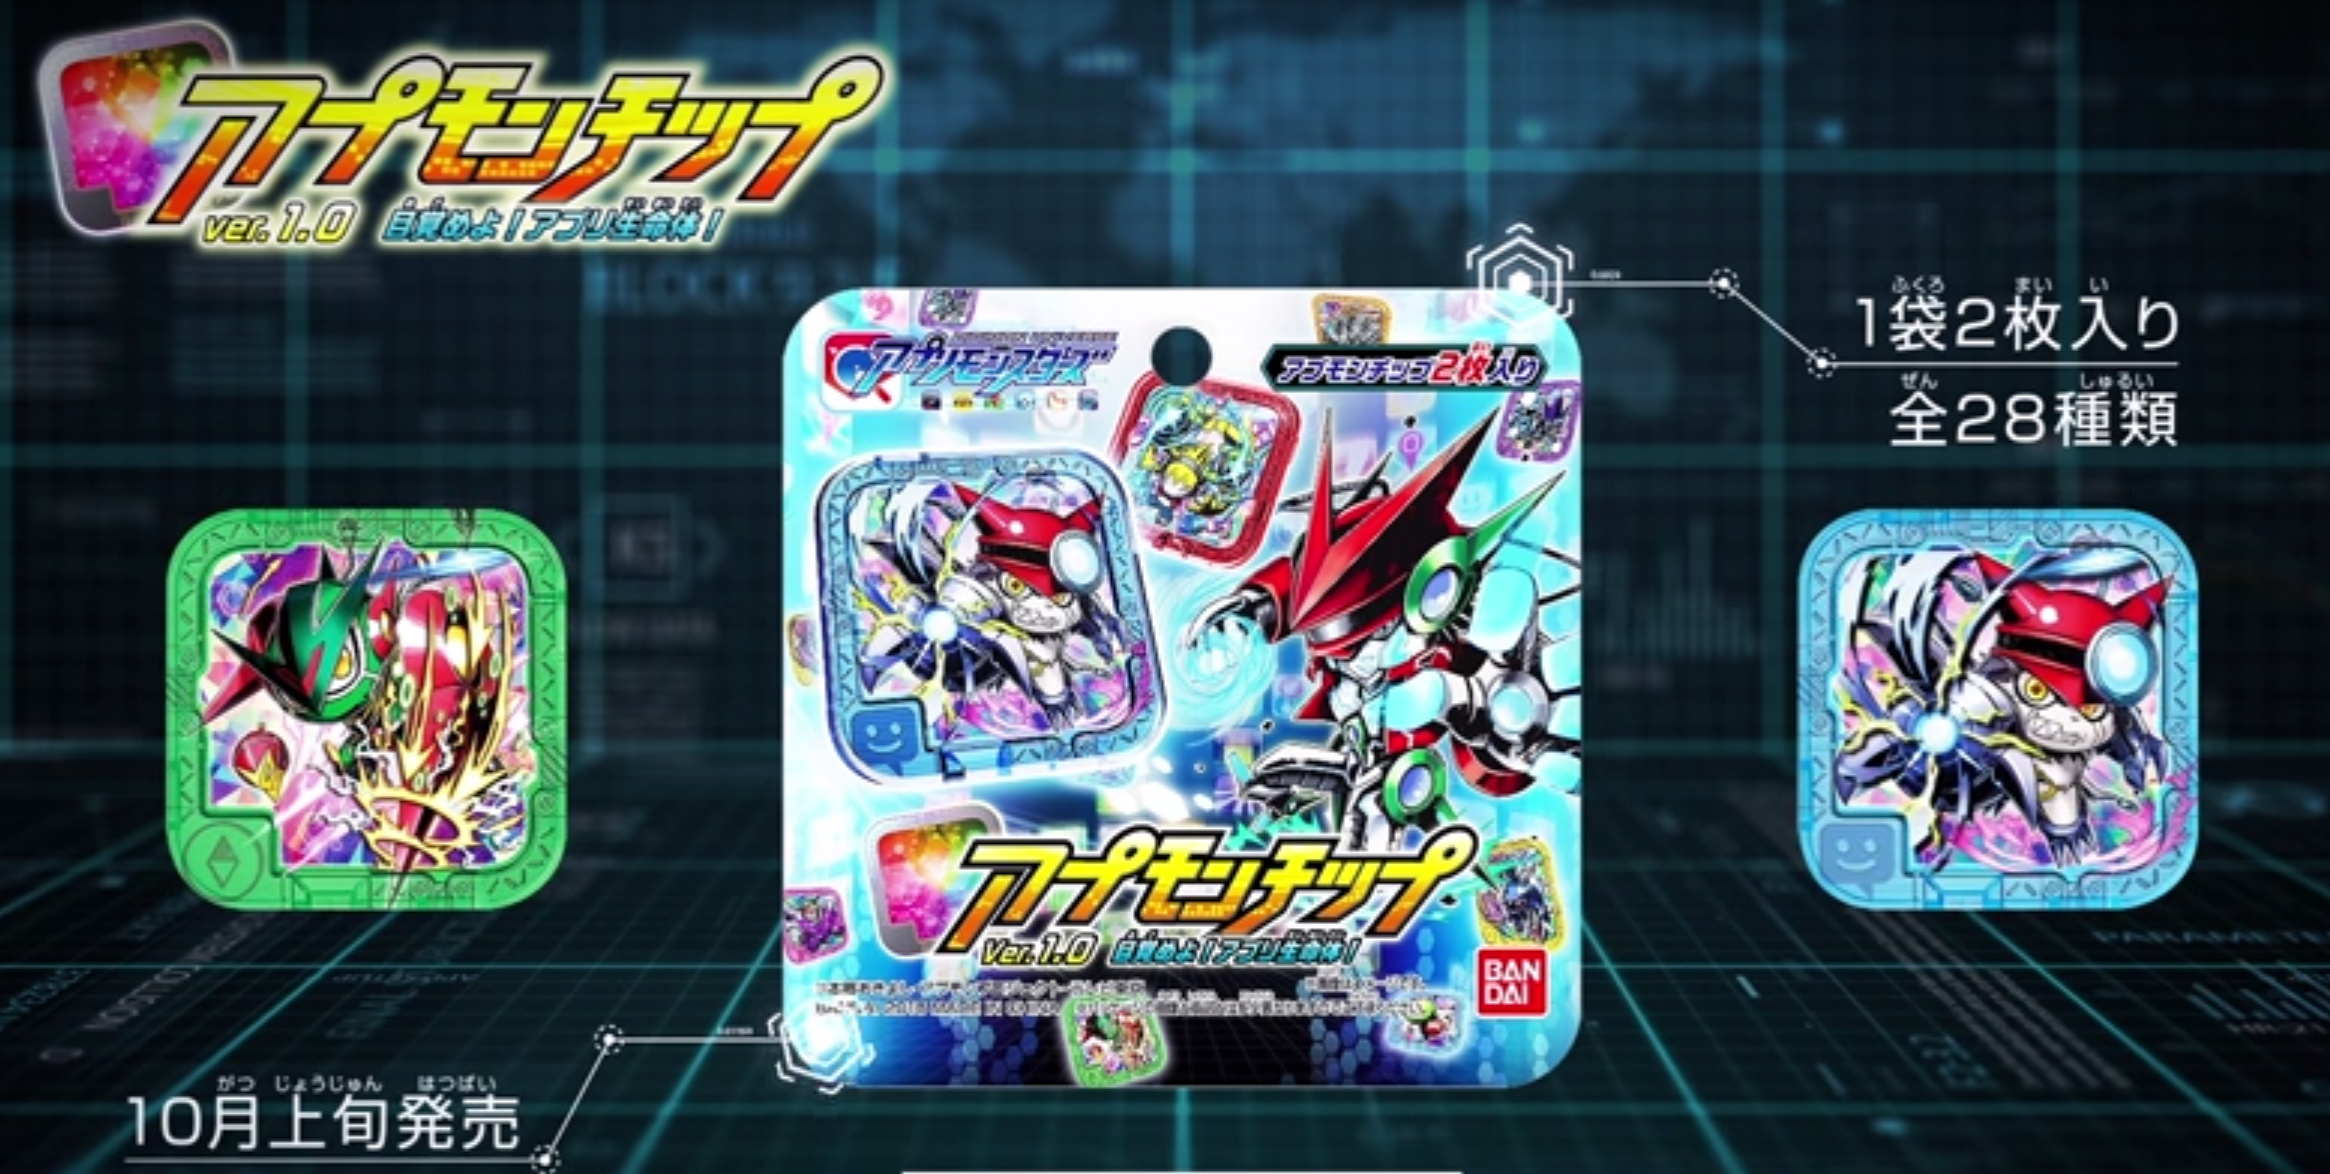 Digimon Universe: Appli Monsters – 3DS Exklusives Game und Appli Device im Oktober